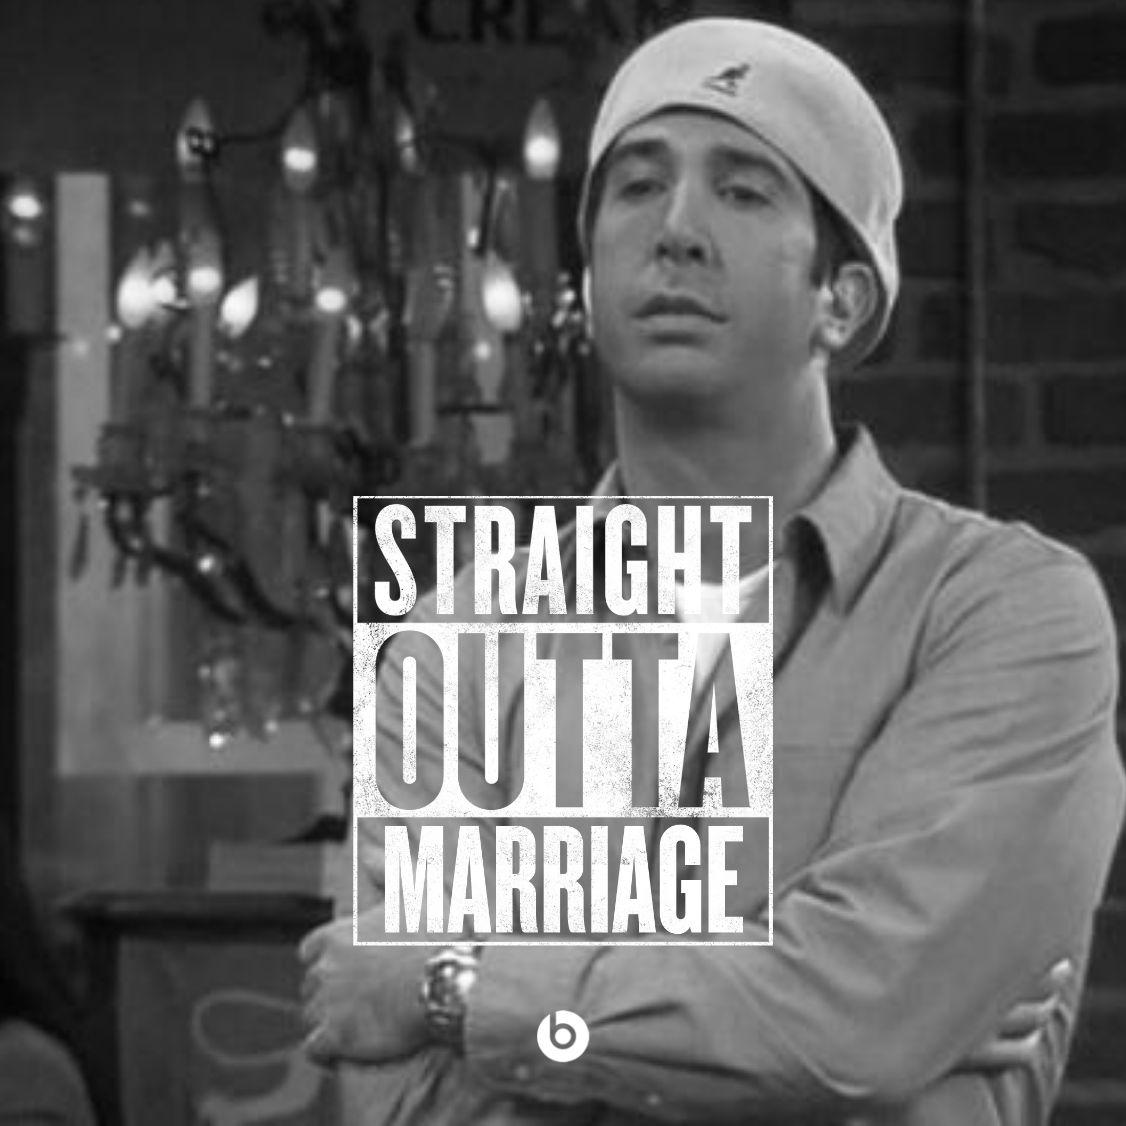 Ross the Divorce Force http://t.co/AIgurXY3Ia